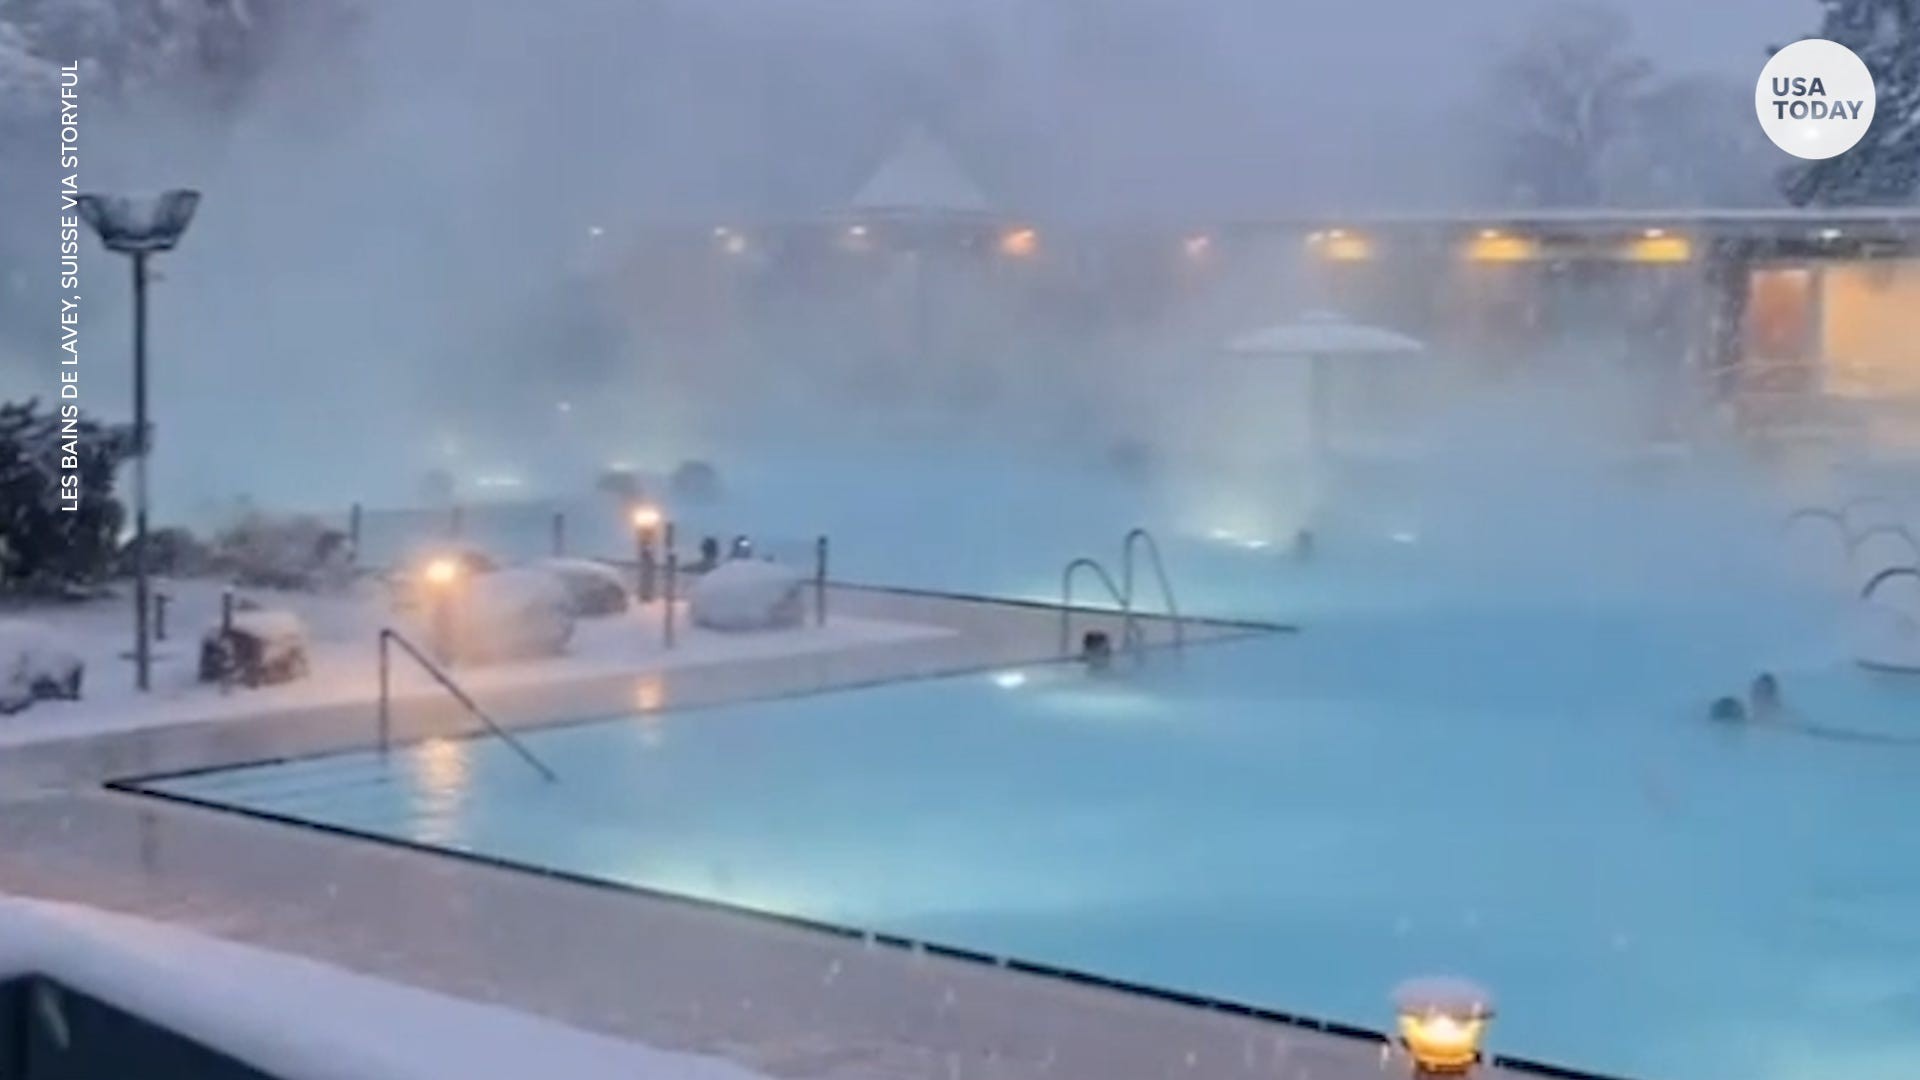 Just looking at the snow falling on these thermal baths relaxes our nerves